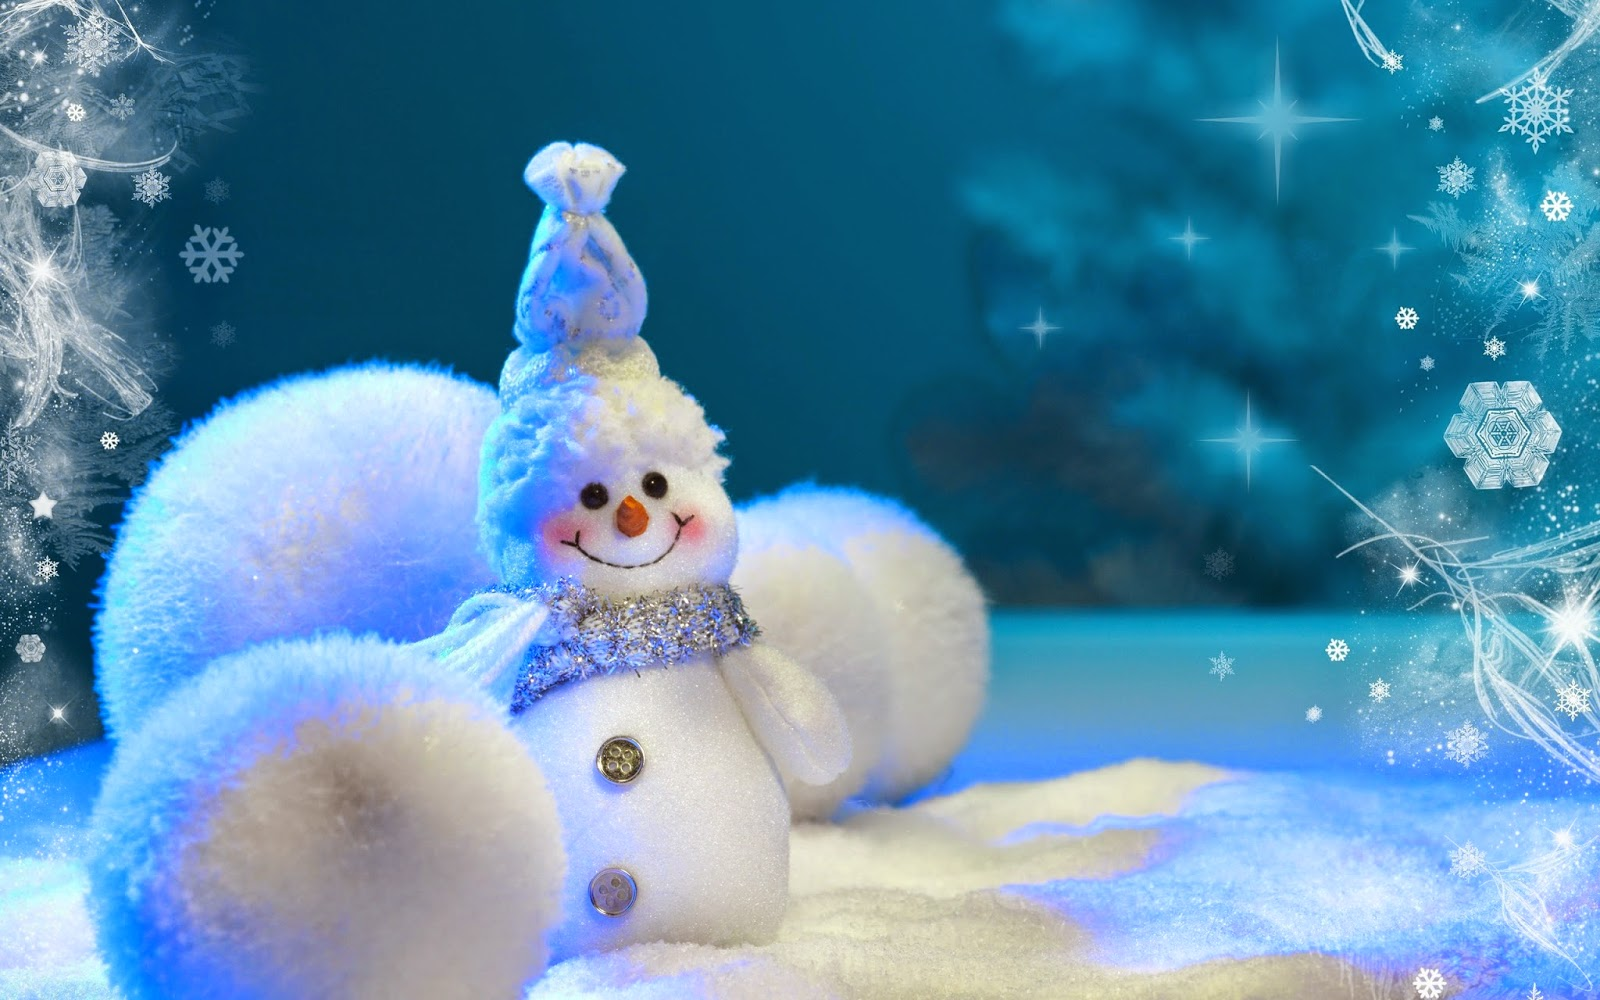 cute-christmas-snowman-wallpaper-blue-theme-template-ice-ball-background-image-picture.jpg